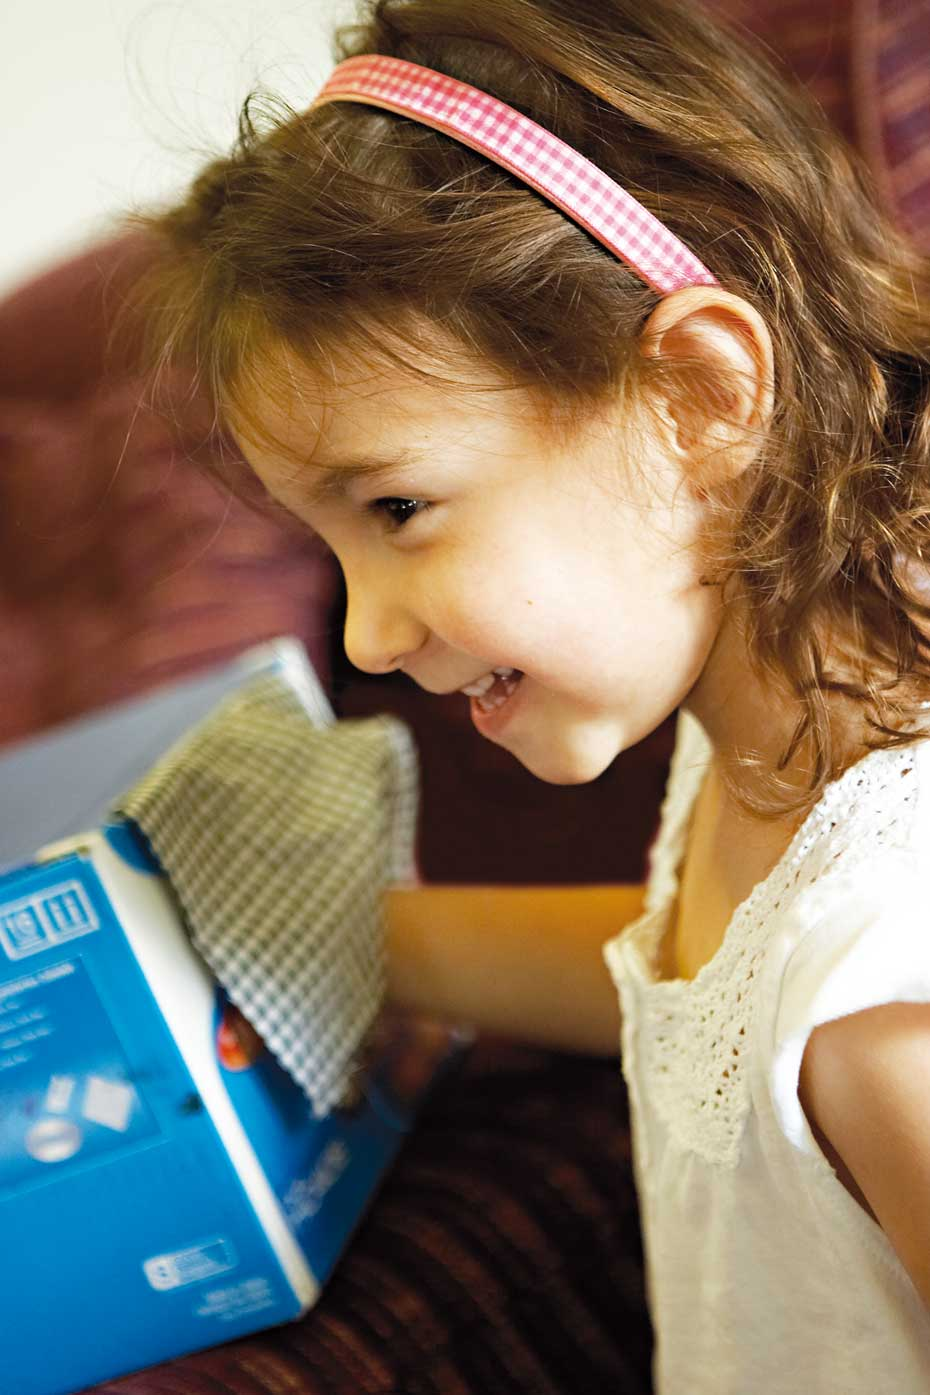 A young girl smiling with her right hand reaching inside a blue cardboard box that has a teatowel covering a hole in the side of the box.